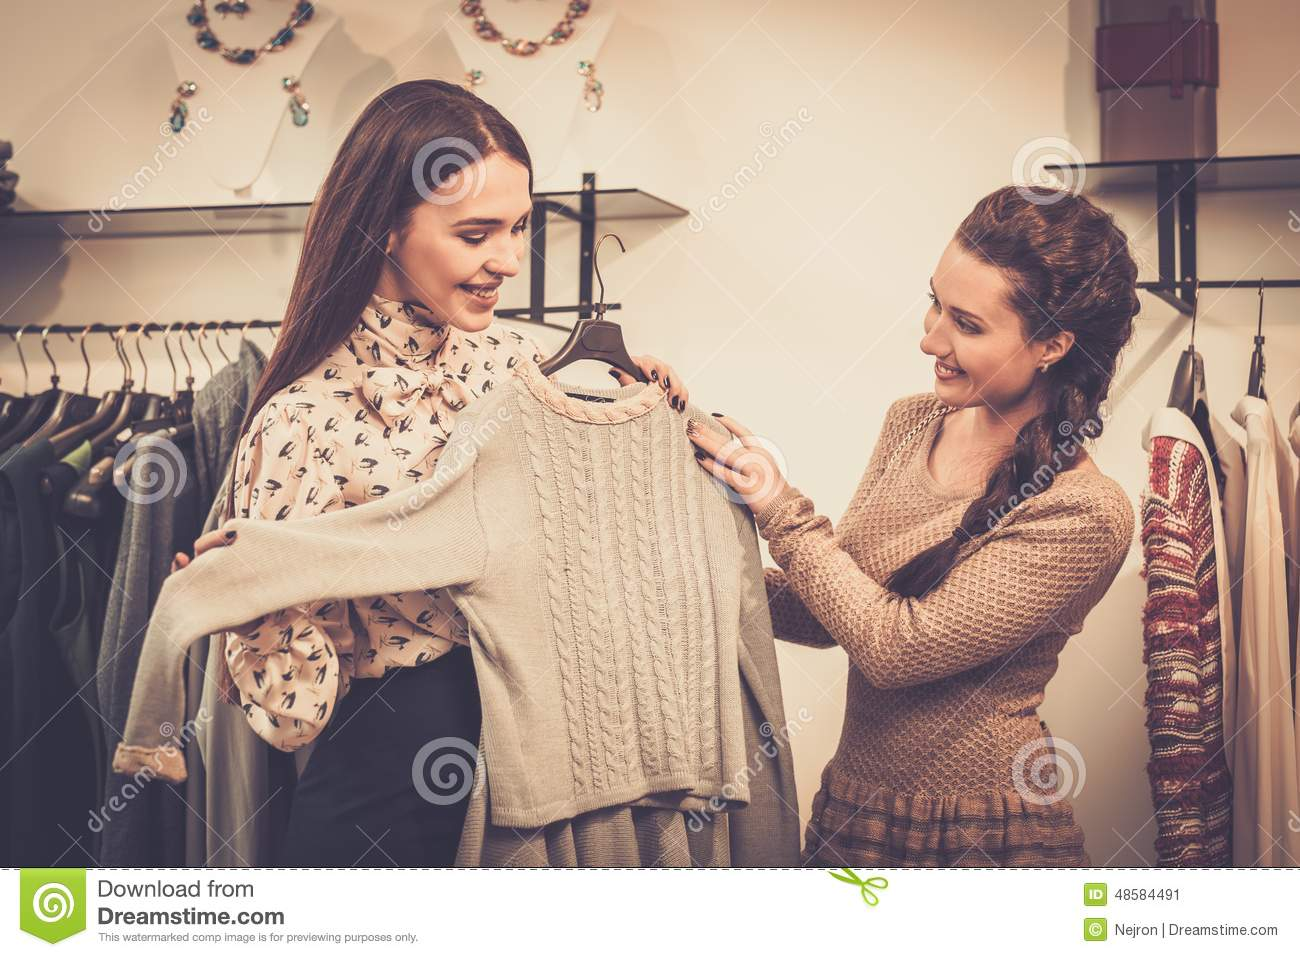 w choosing clothes shop assistant stock photo image w choosing clothes shop assistant